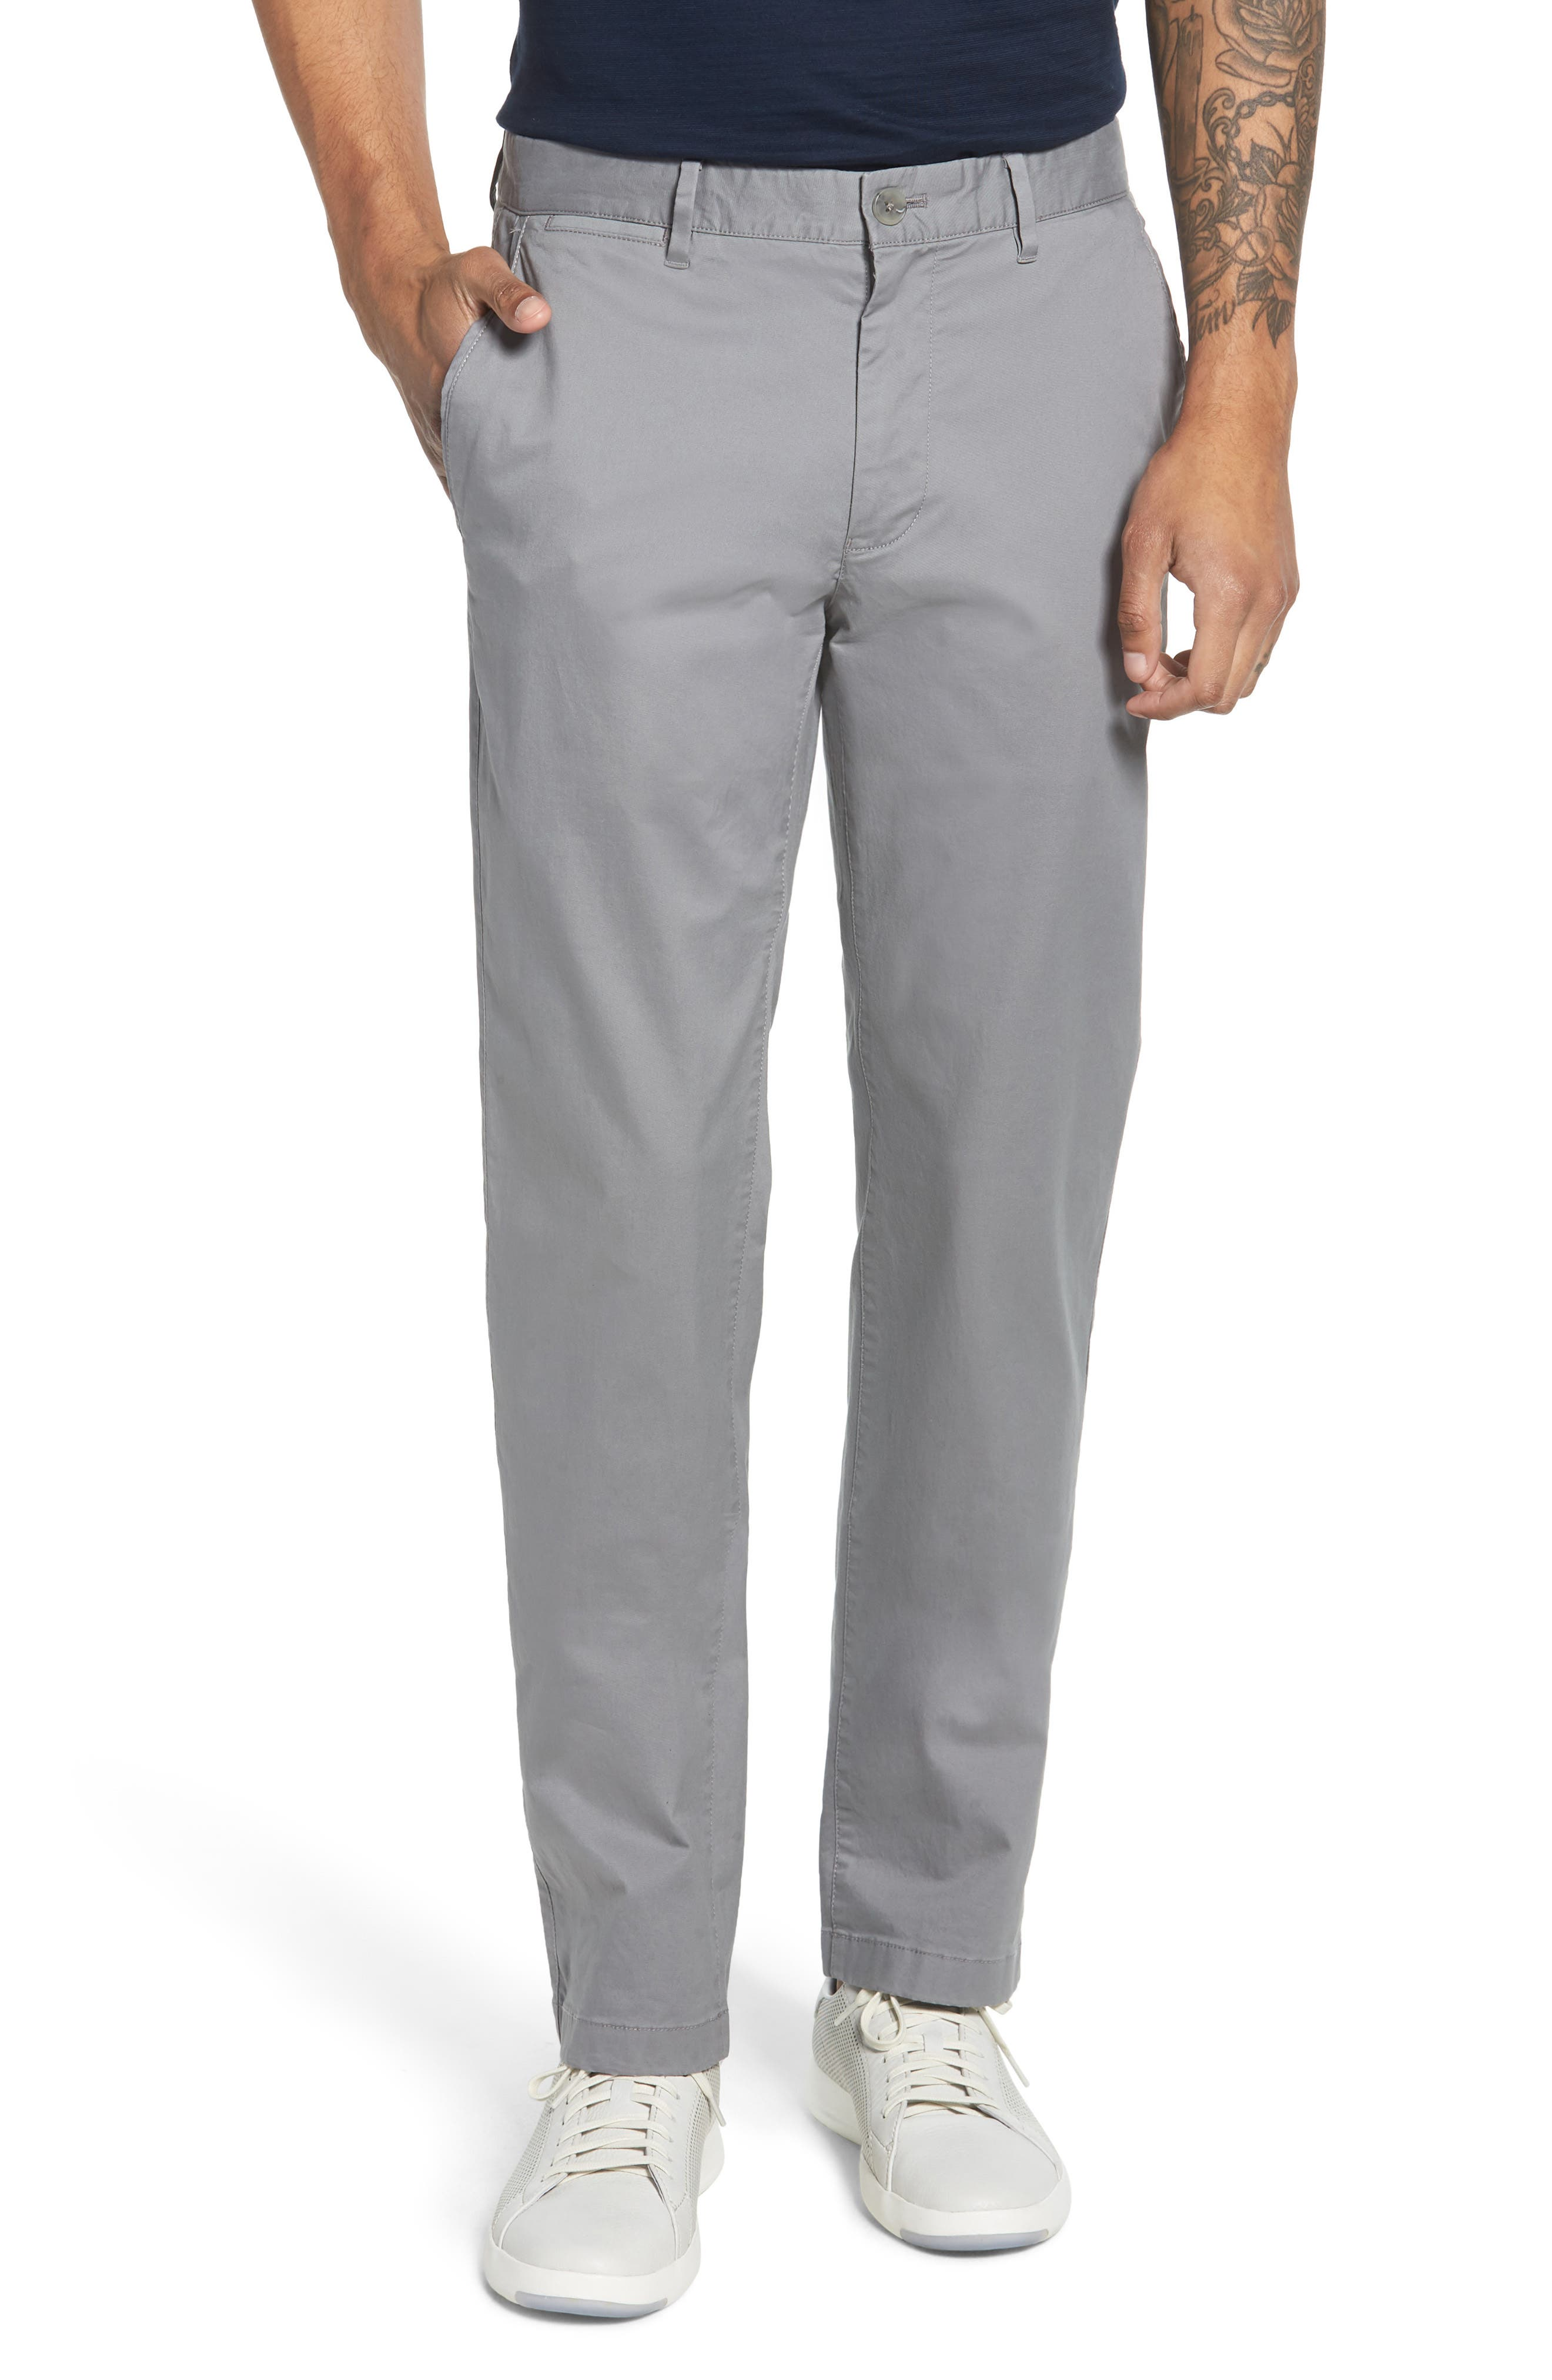 Summer Weight Slim Fit Stretch Chinos,                             Main thumbnail 1, color,                             NICKEL